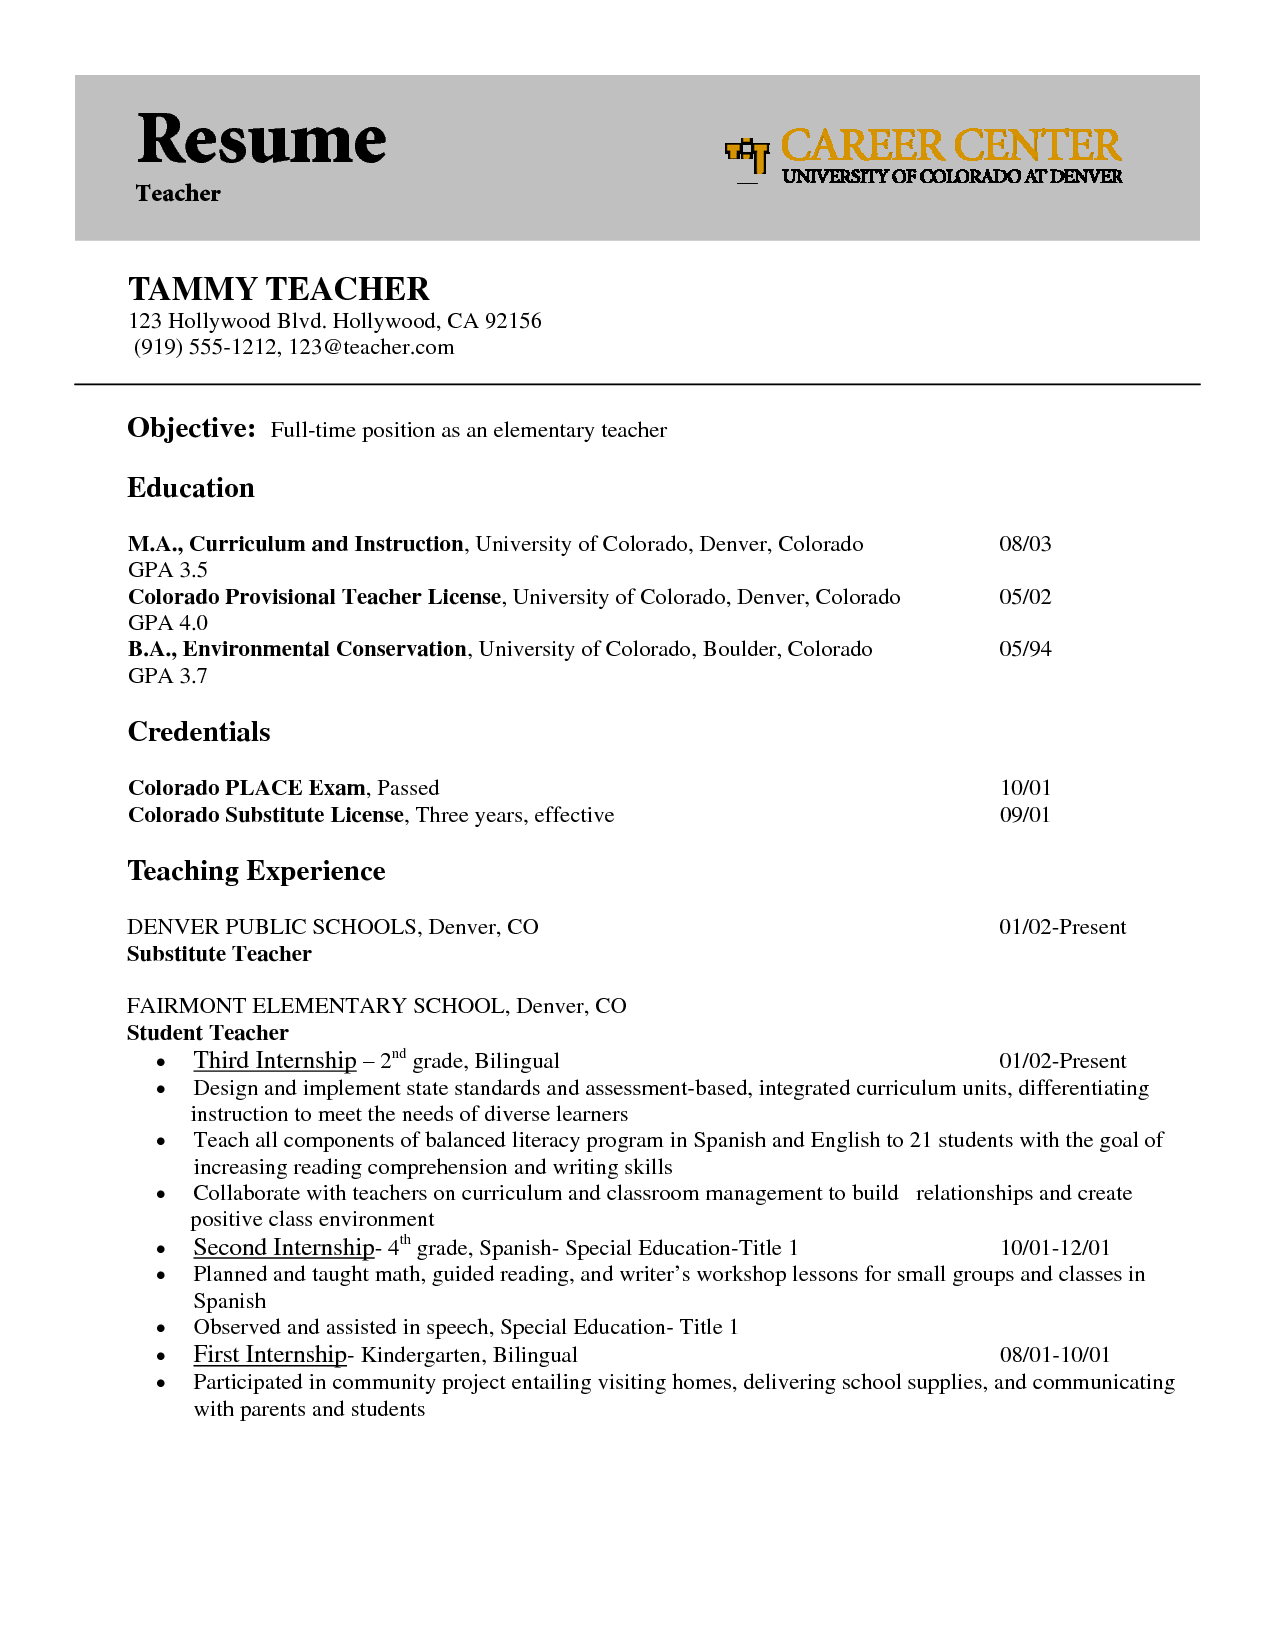 Teacher Cover Letters With Experience Job Hunting Write A Great